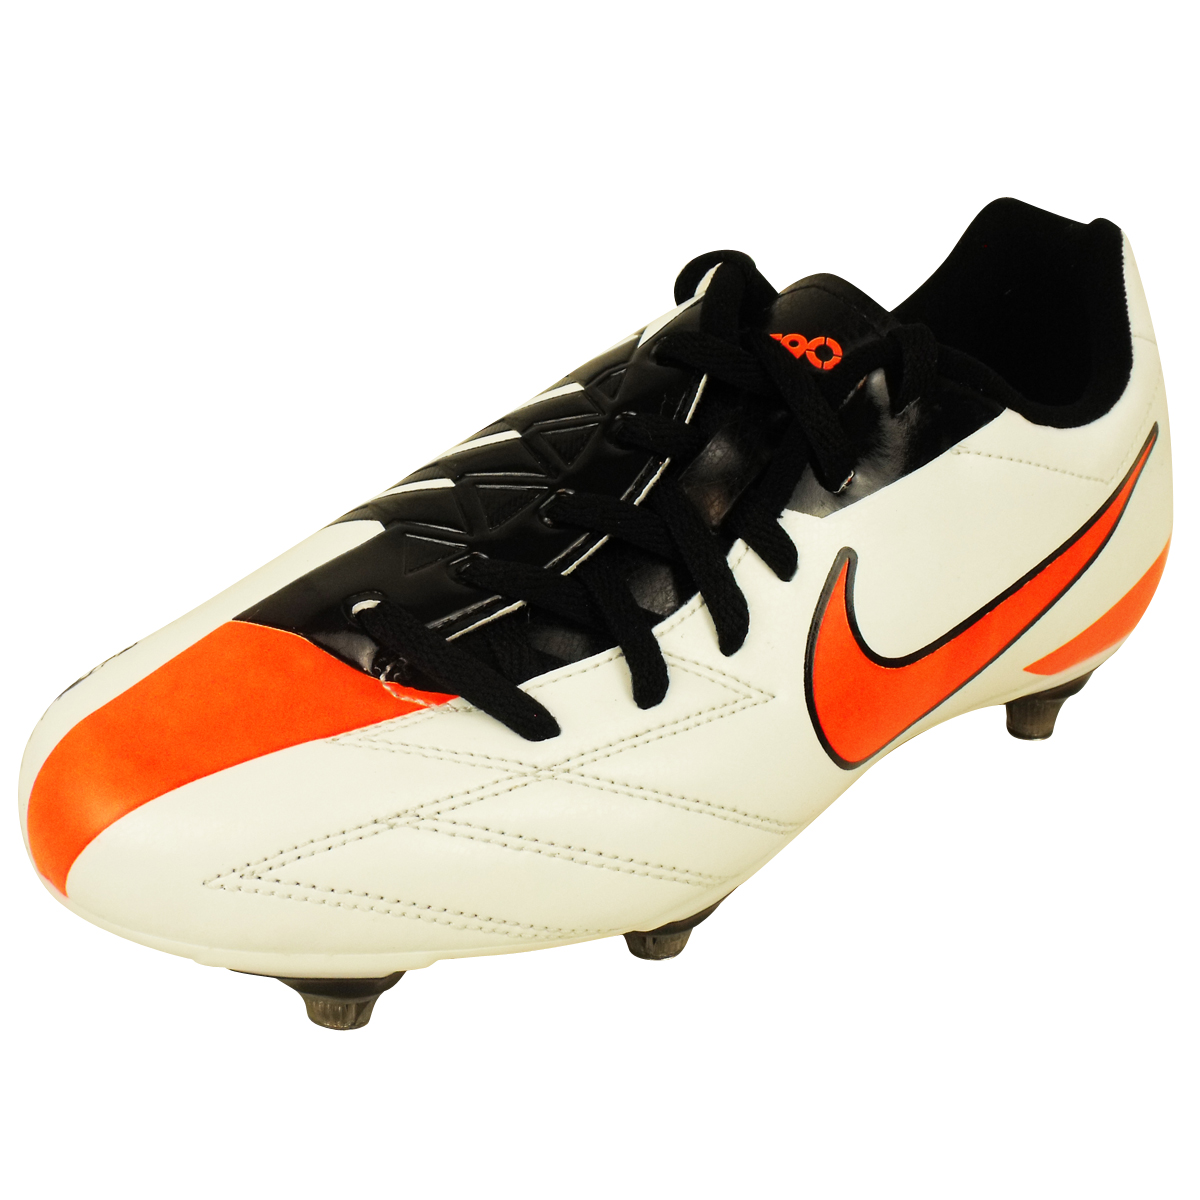 Boys Nike Total 90 SG Soft Ground Football Boots Junior ...